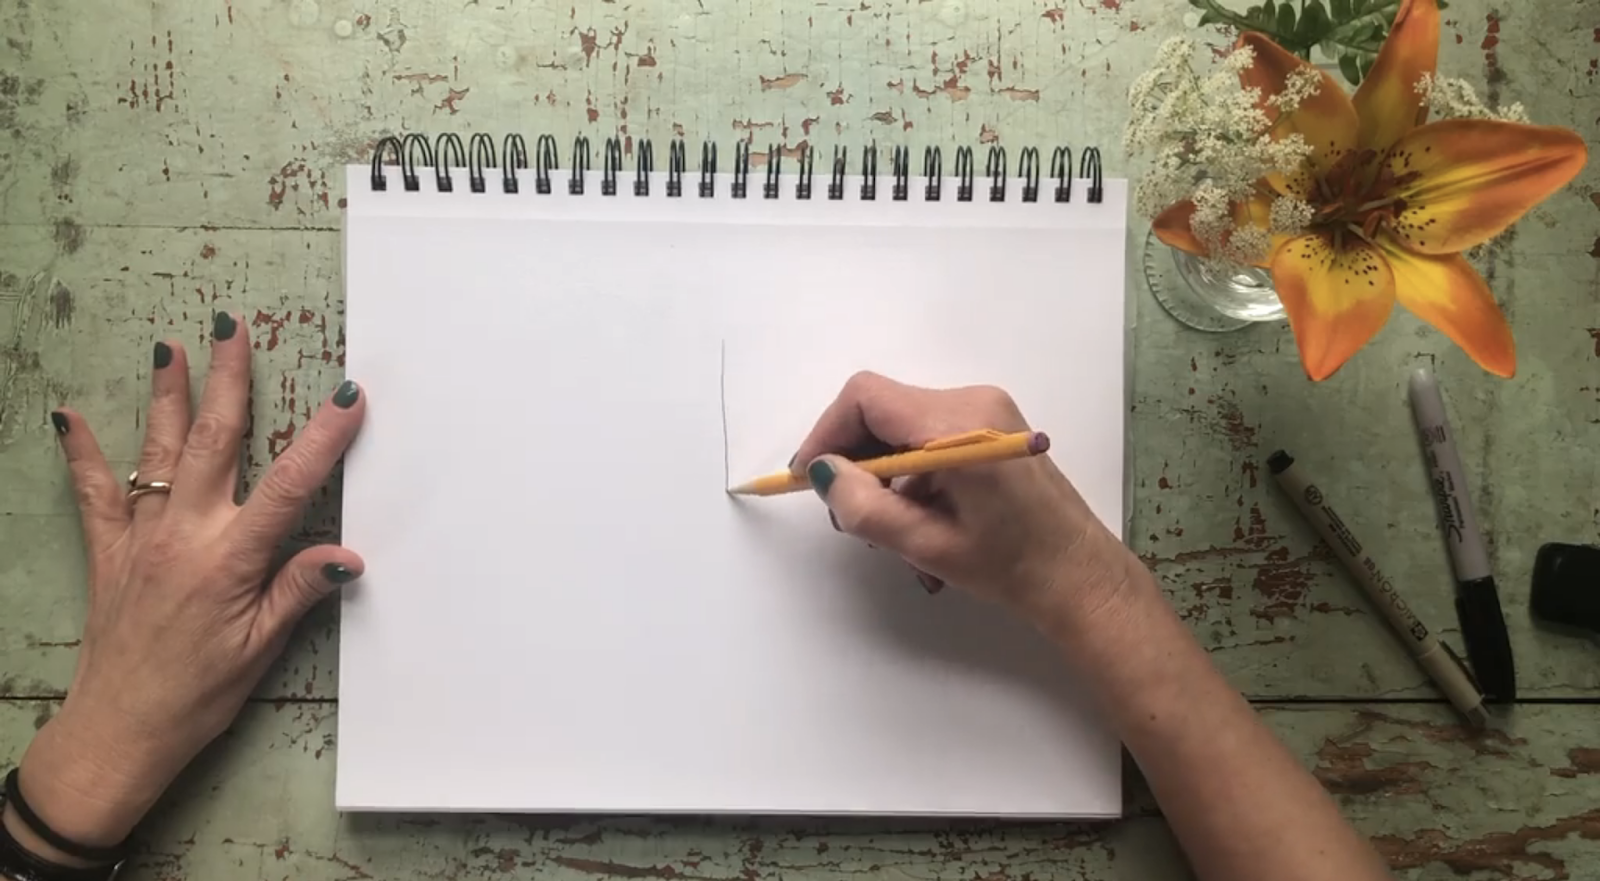 An amazing butterfly drawing starts with one simple line.